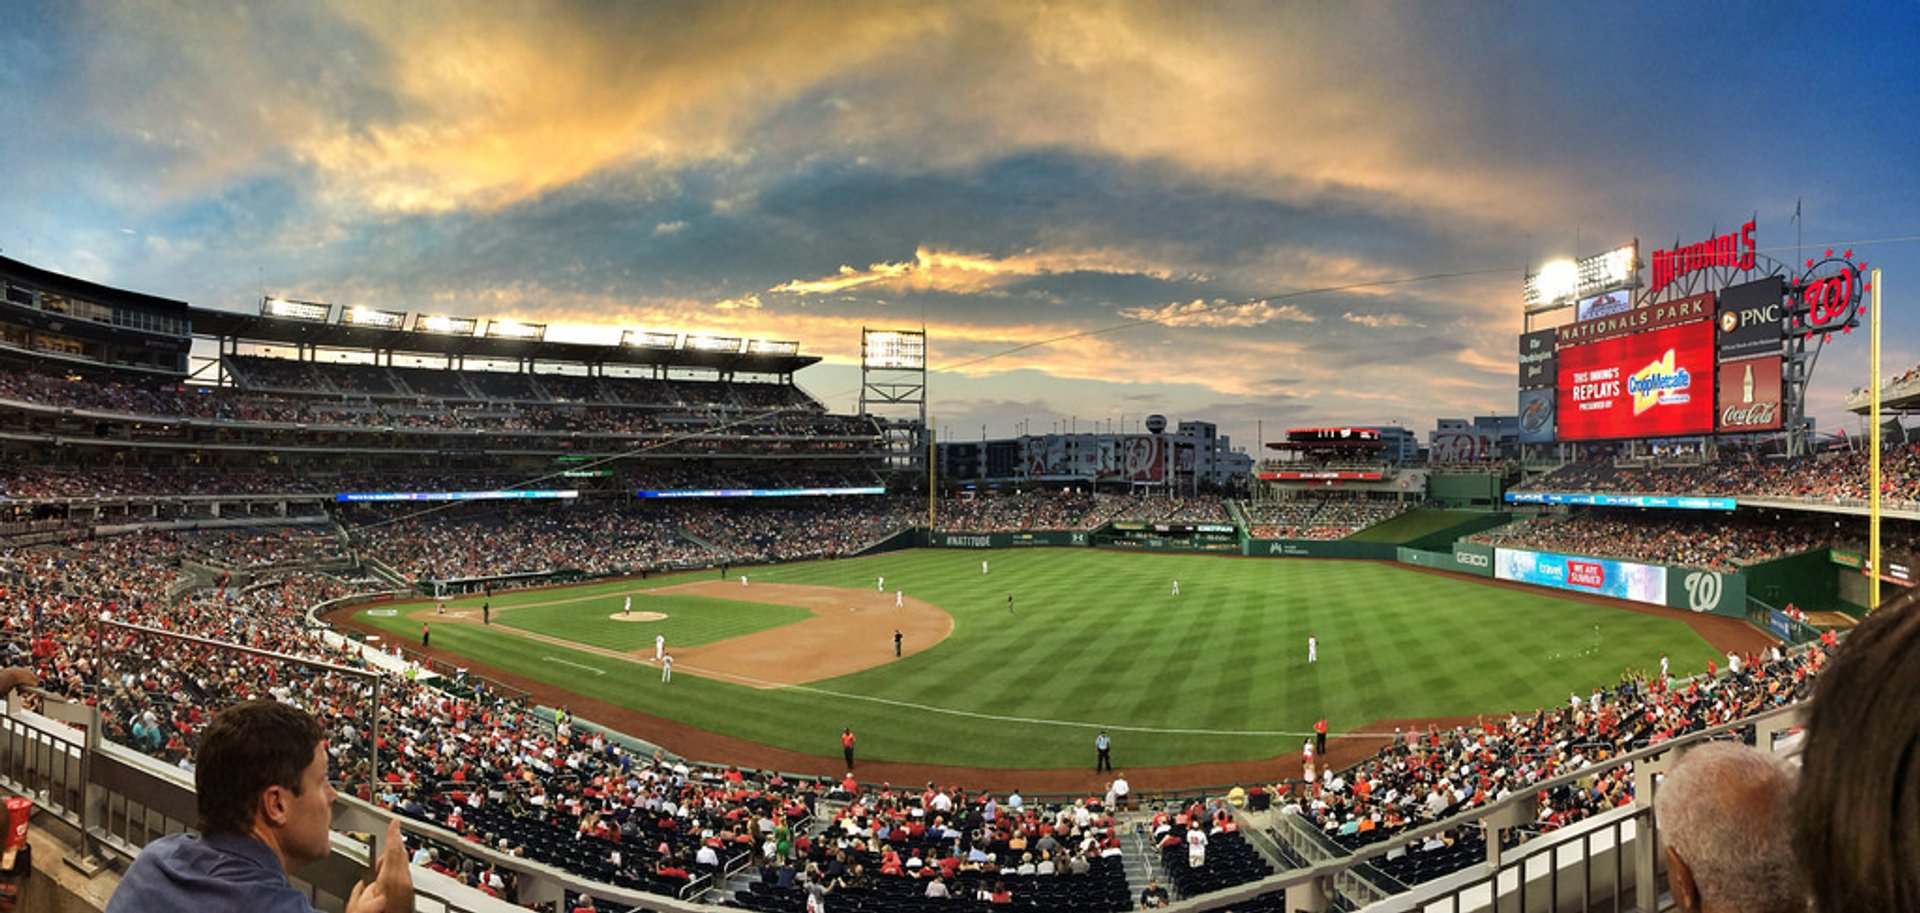 Best time for Washington Nationals in Washington, D.C. 2020